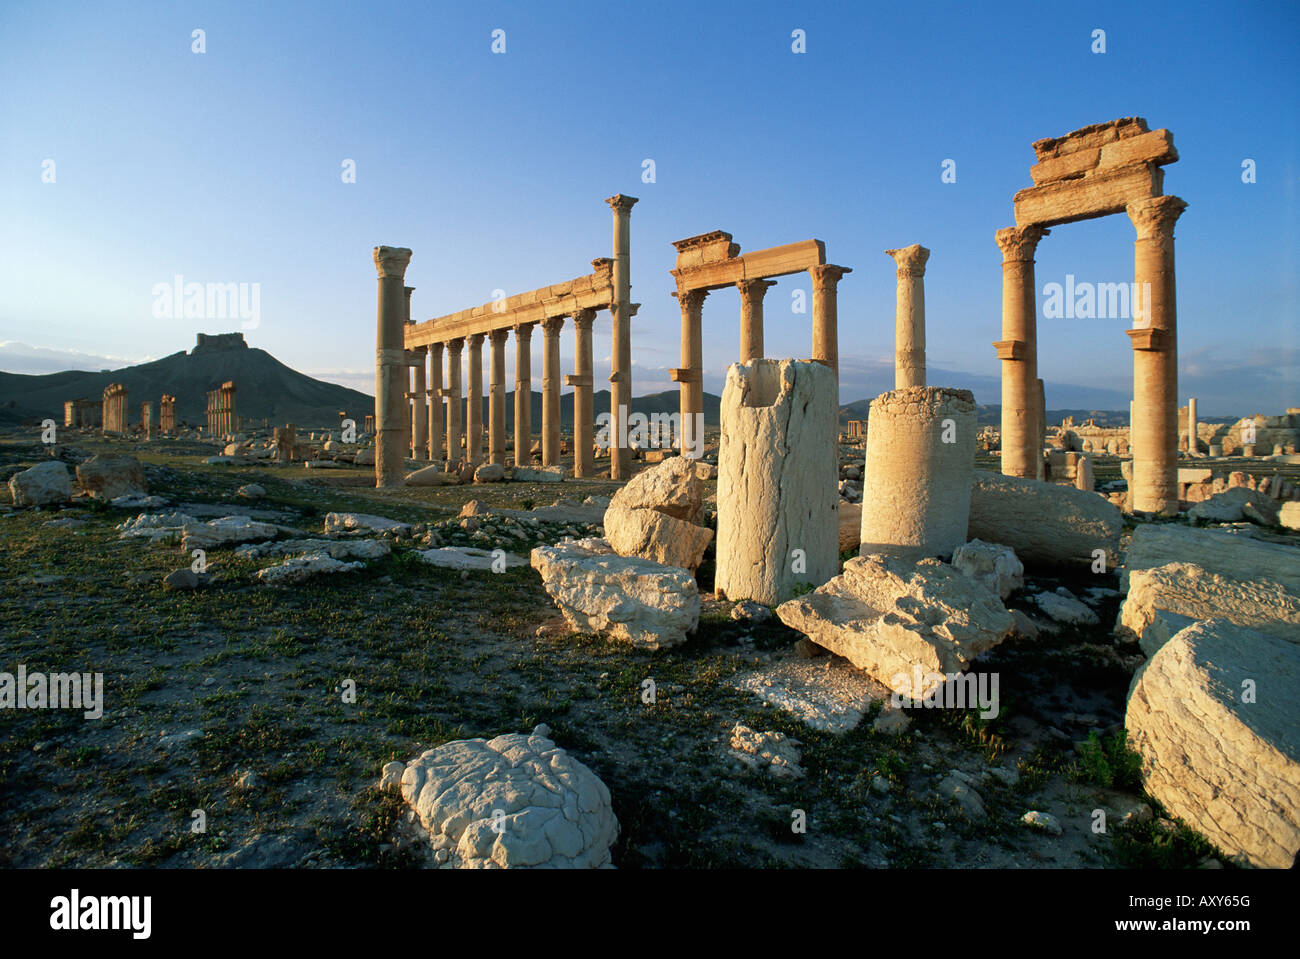 The archaeological site, Palmyra, UNESCO World Heritage Site, Syria, Middle East - Stock Image